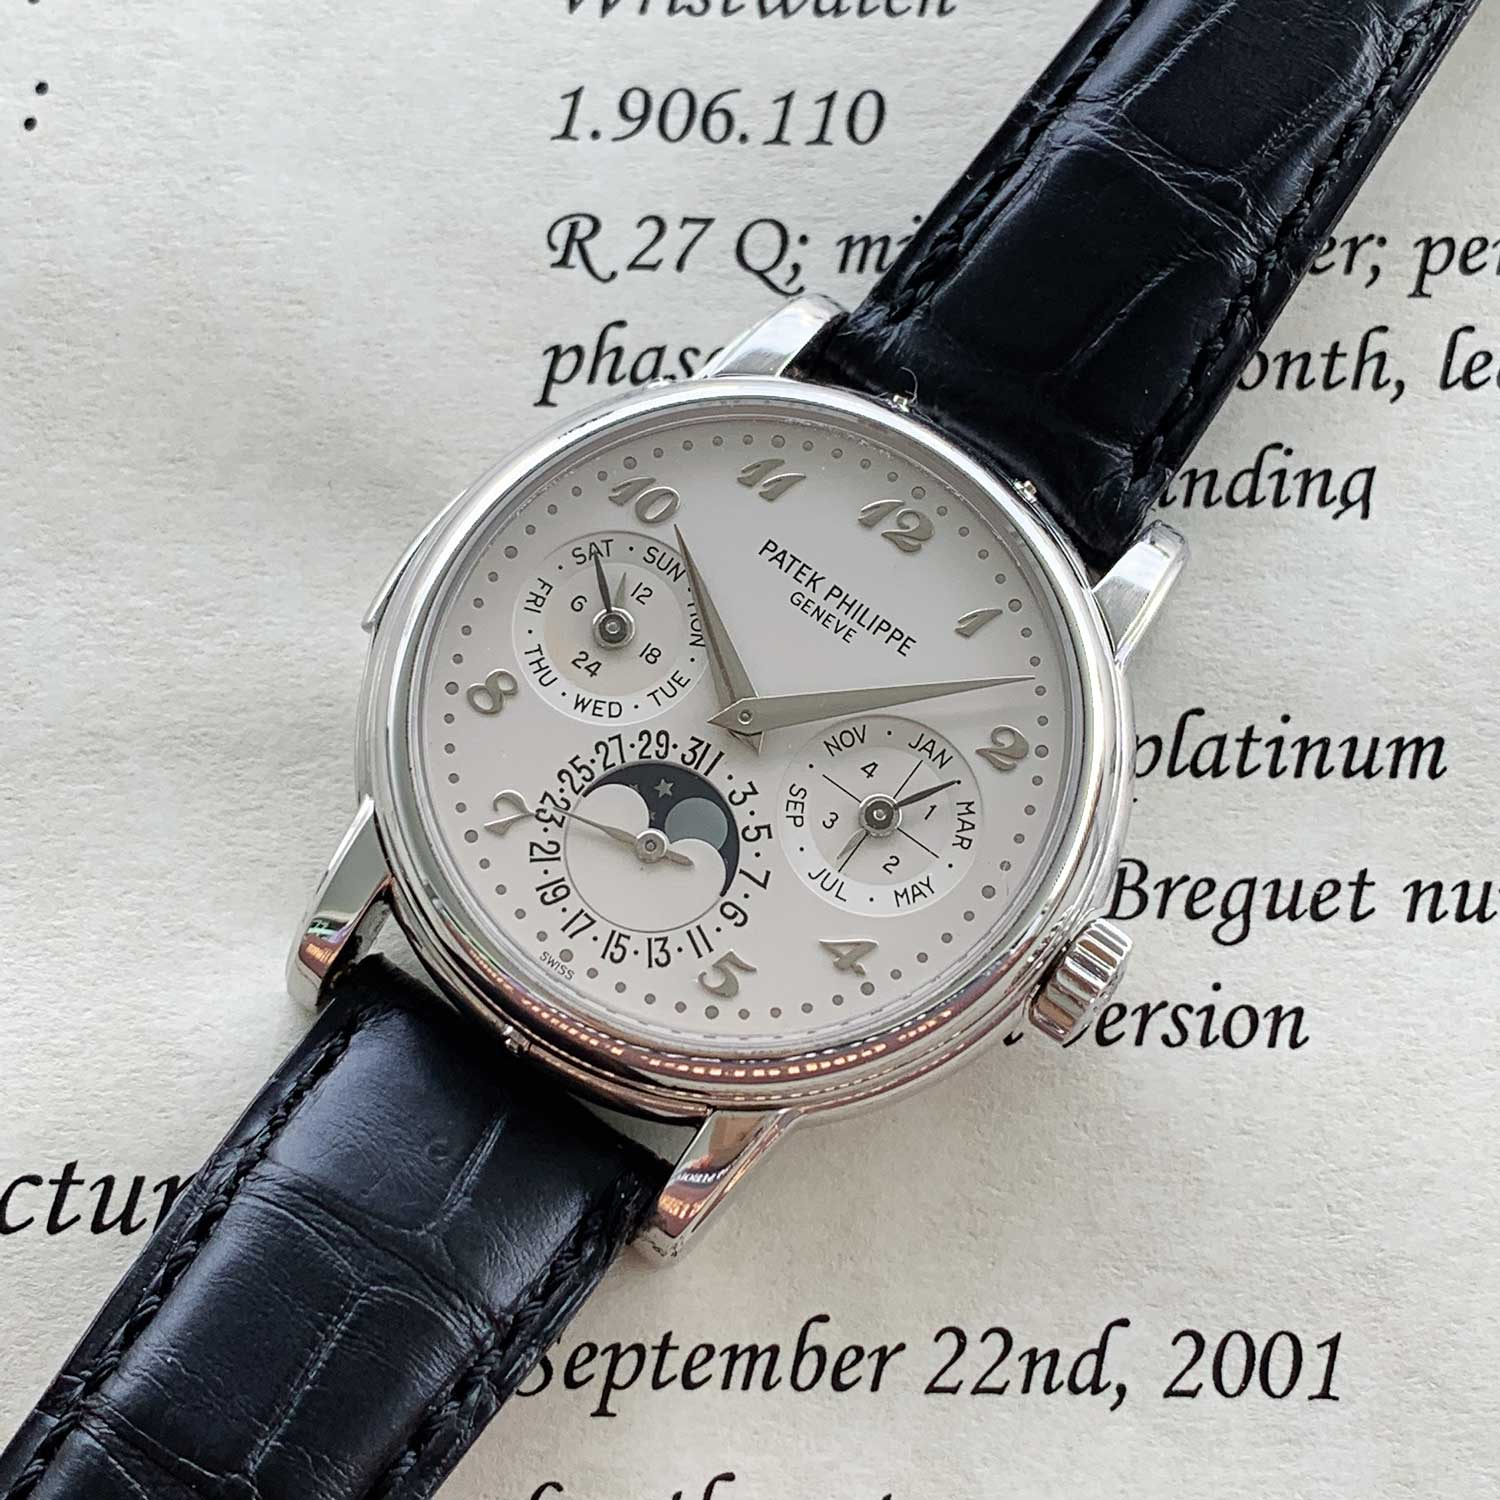 A very rare Patek Philippe ref 3974 in white gold with applied Breguet numerals.